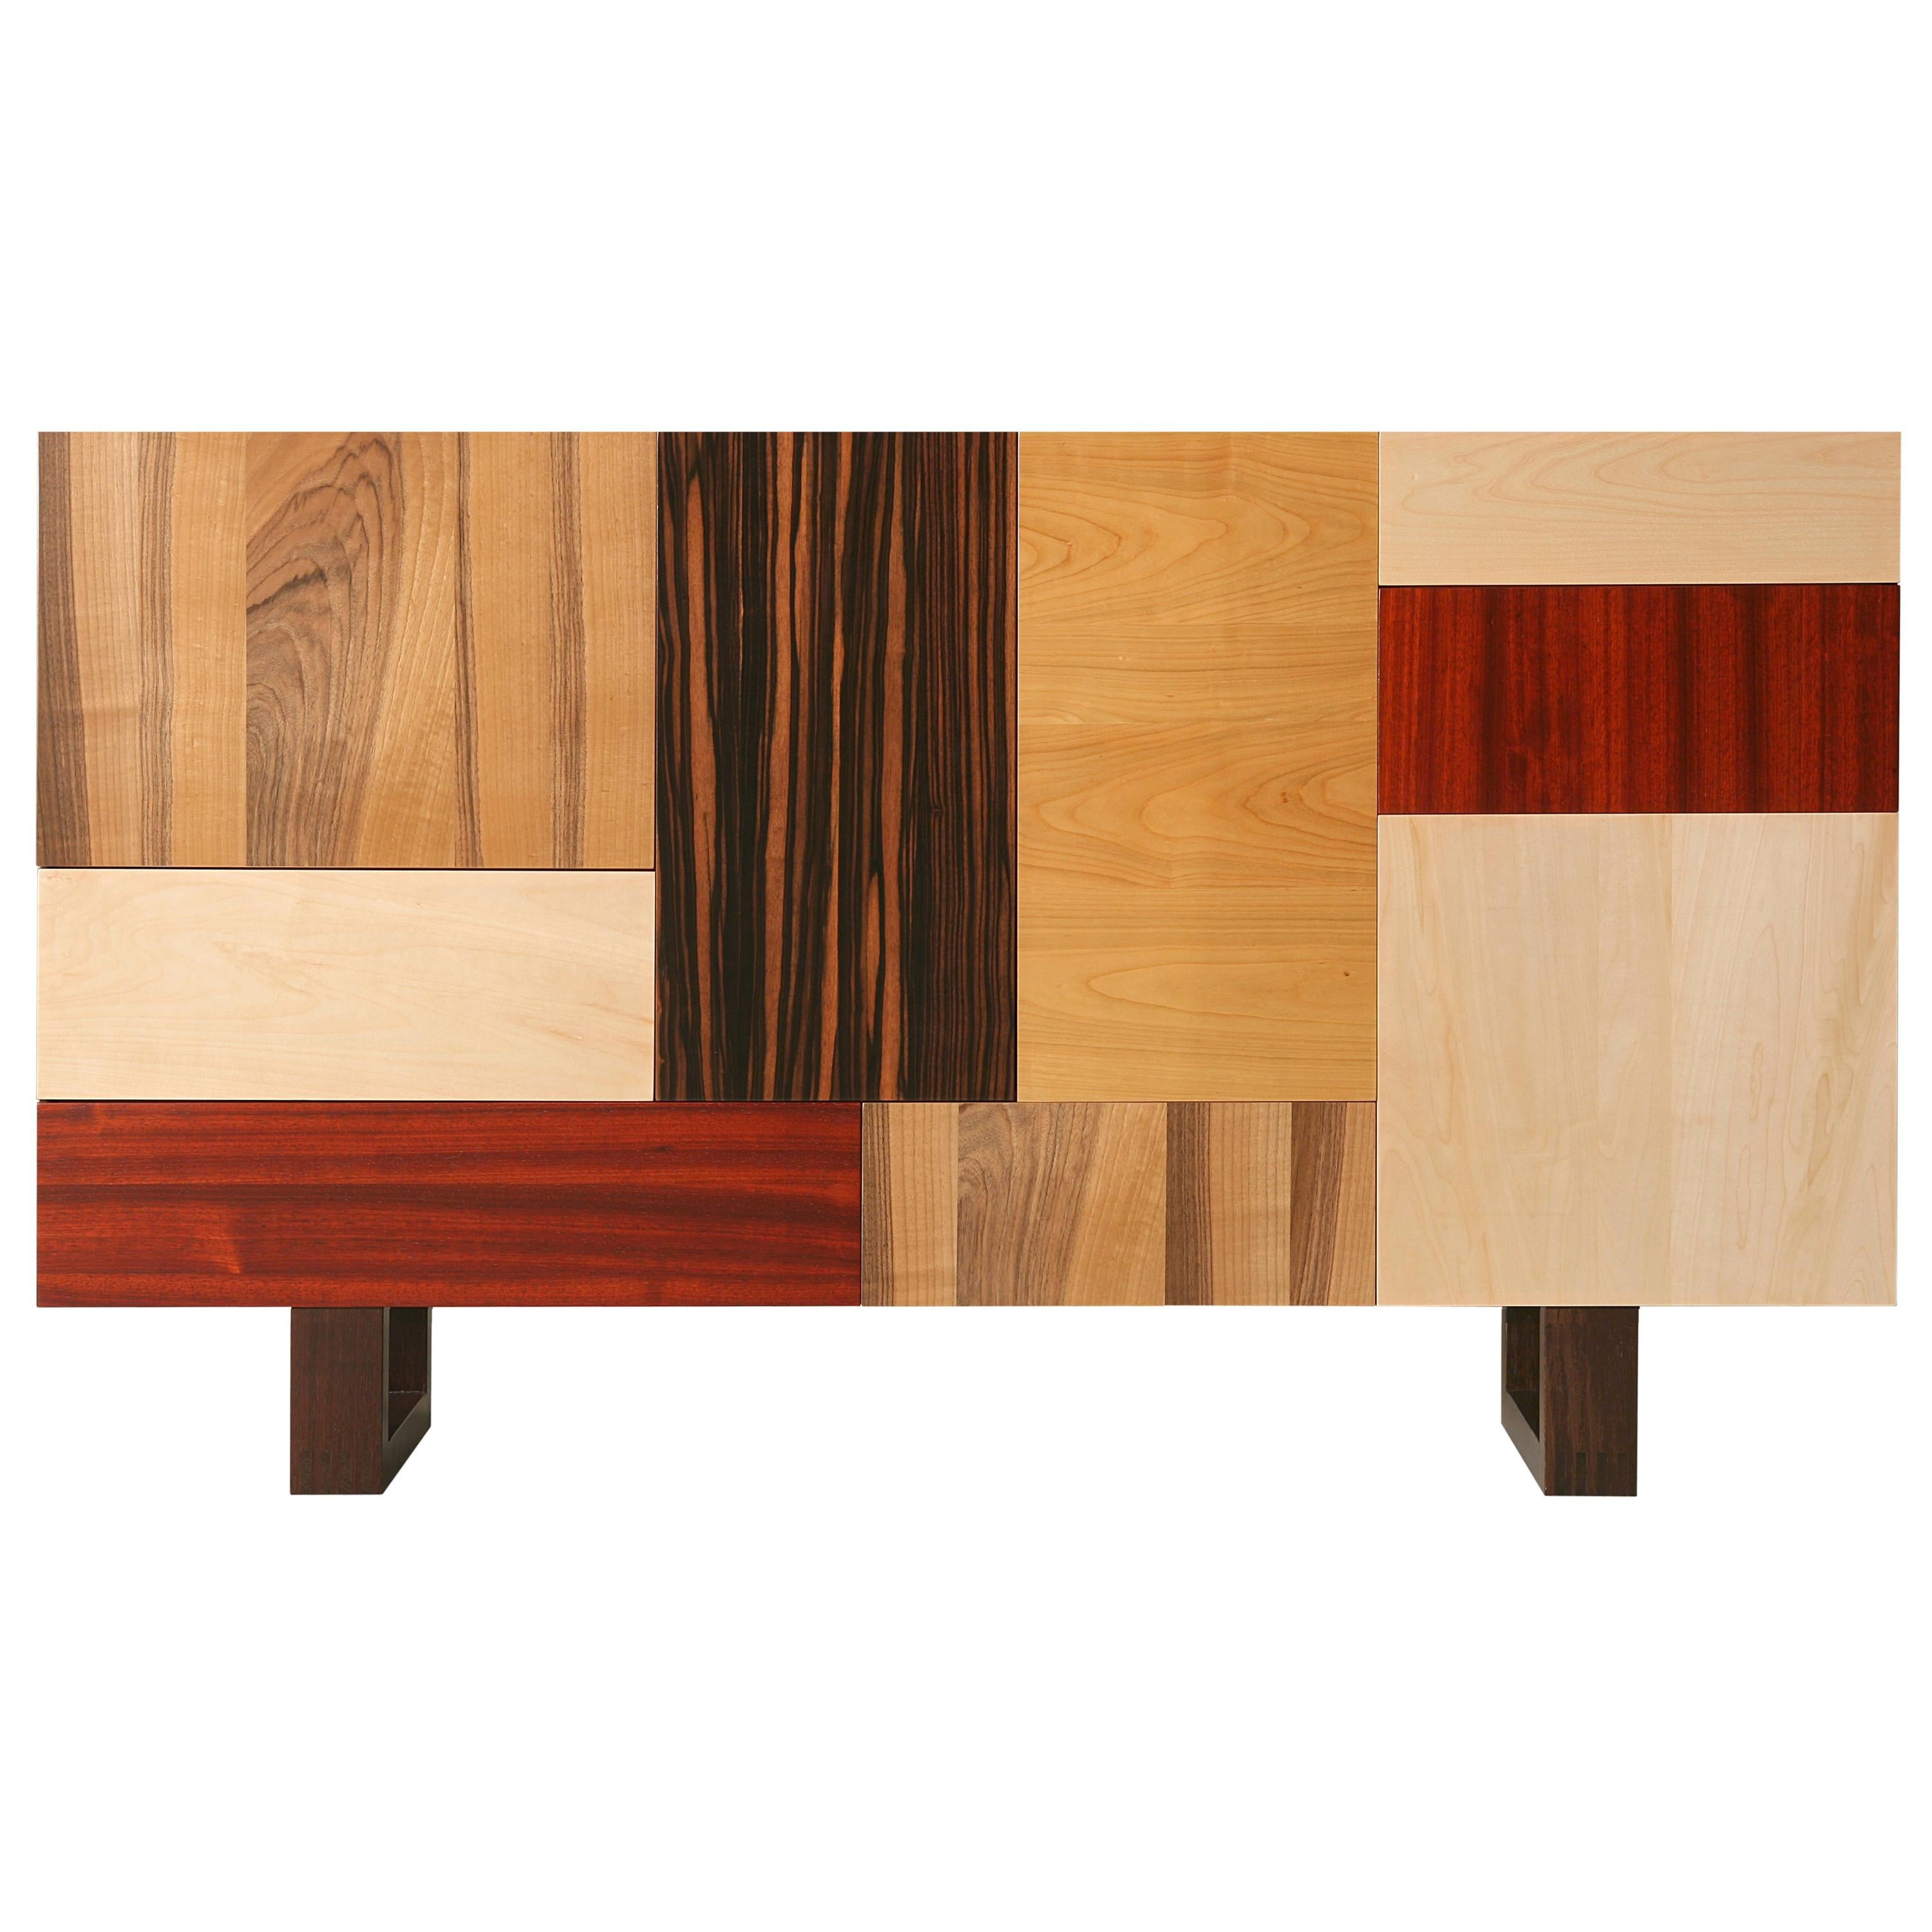 Fantesca by Moelato, Contemporary Sideboard Made with Wood Patchwork